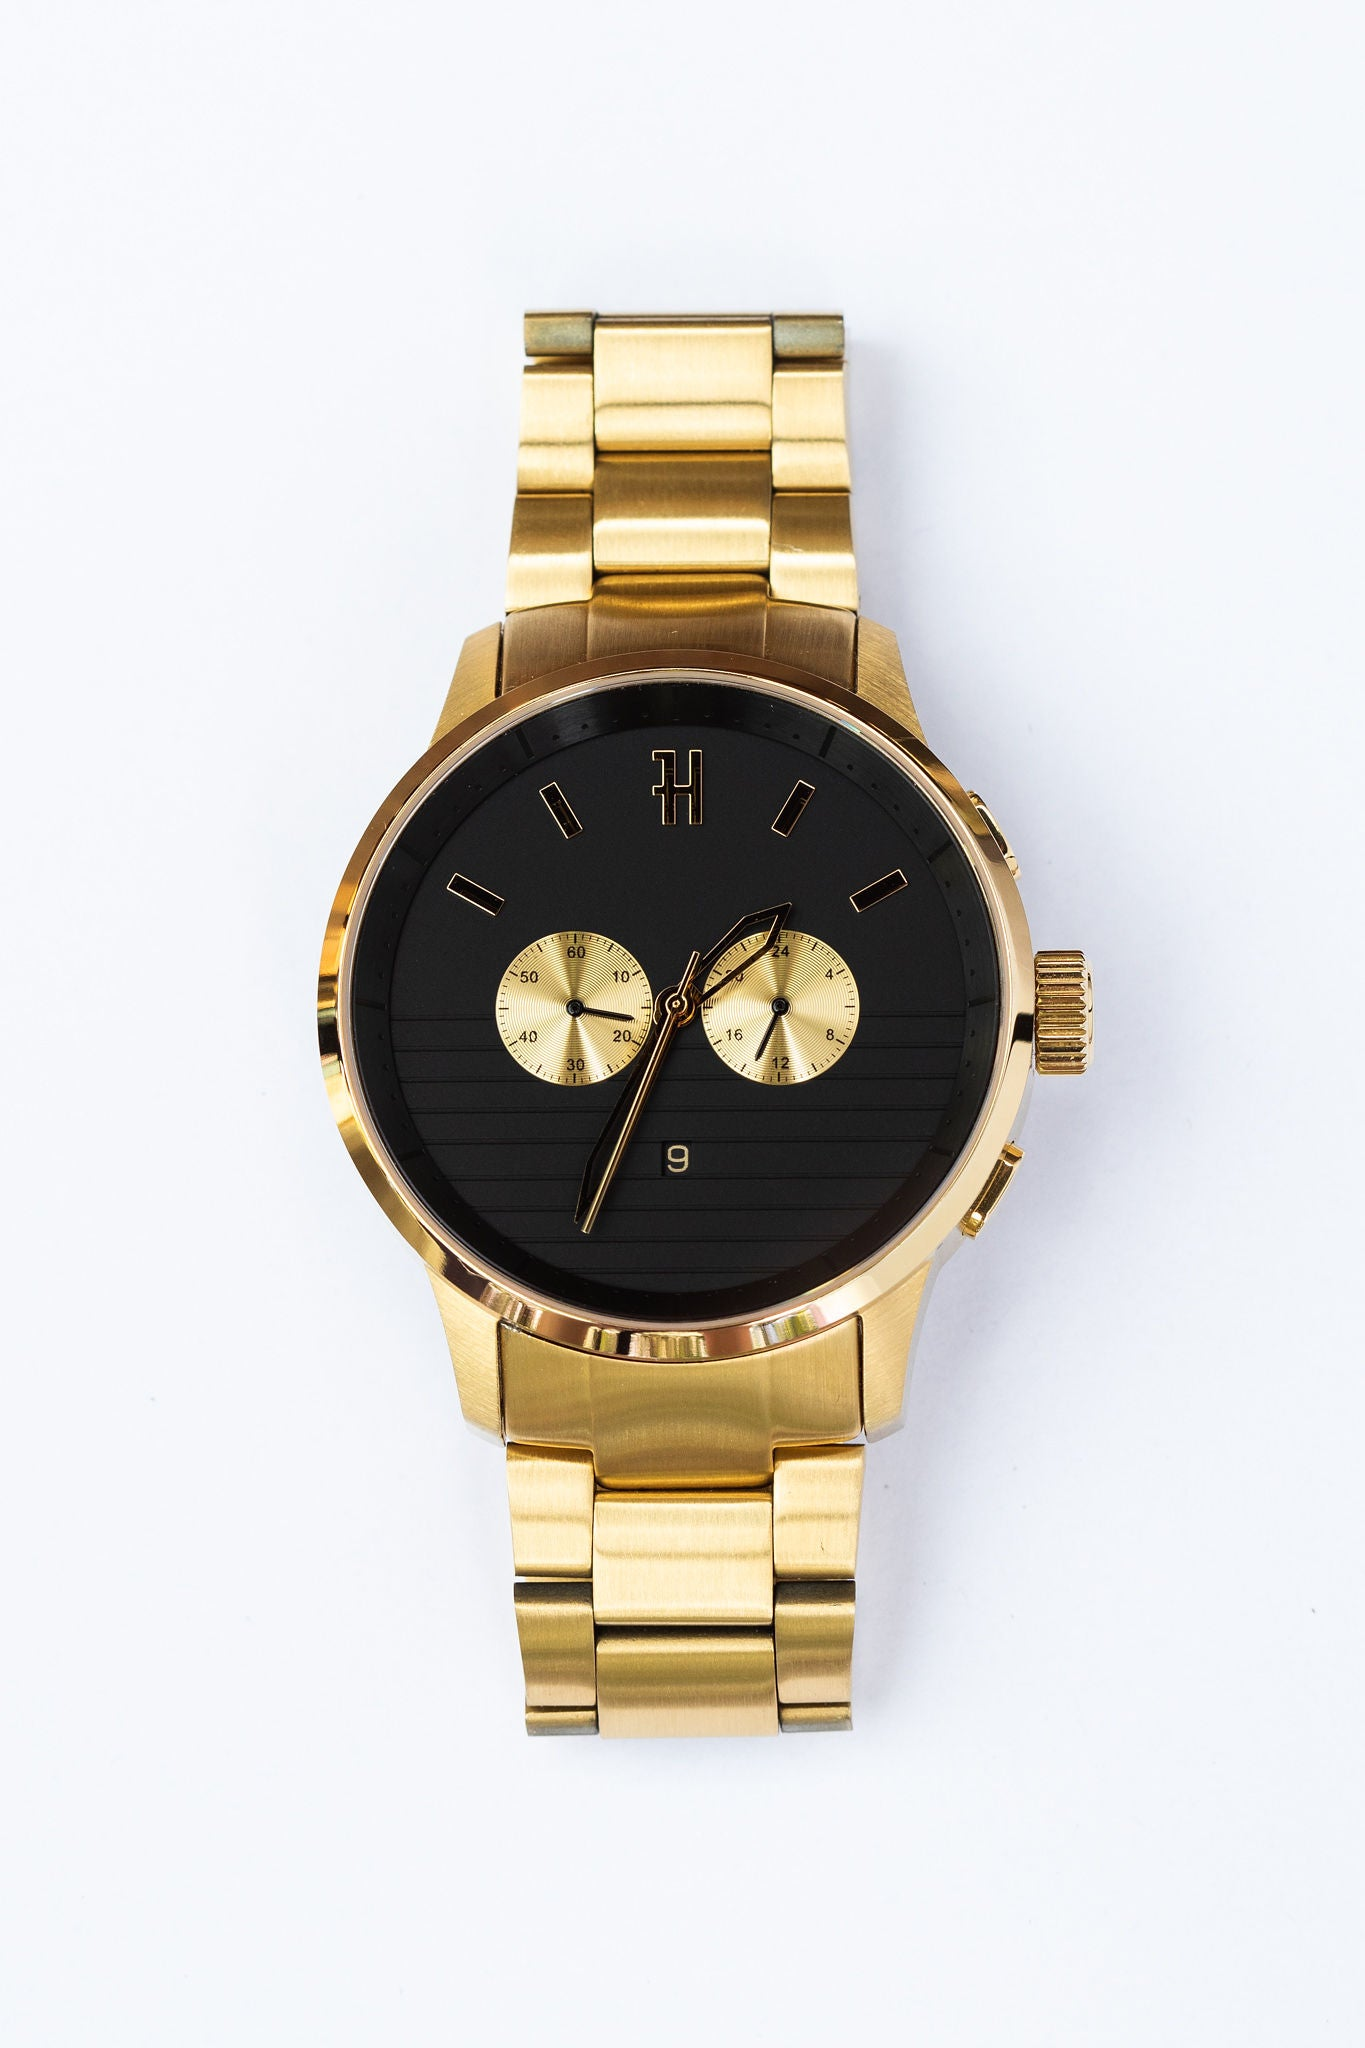 THE MC - GOLD MENS WATCH